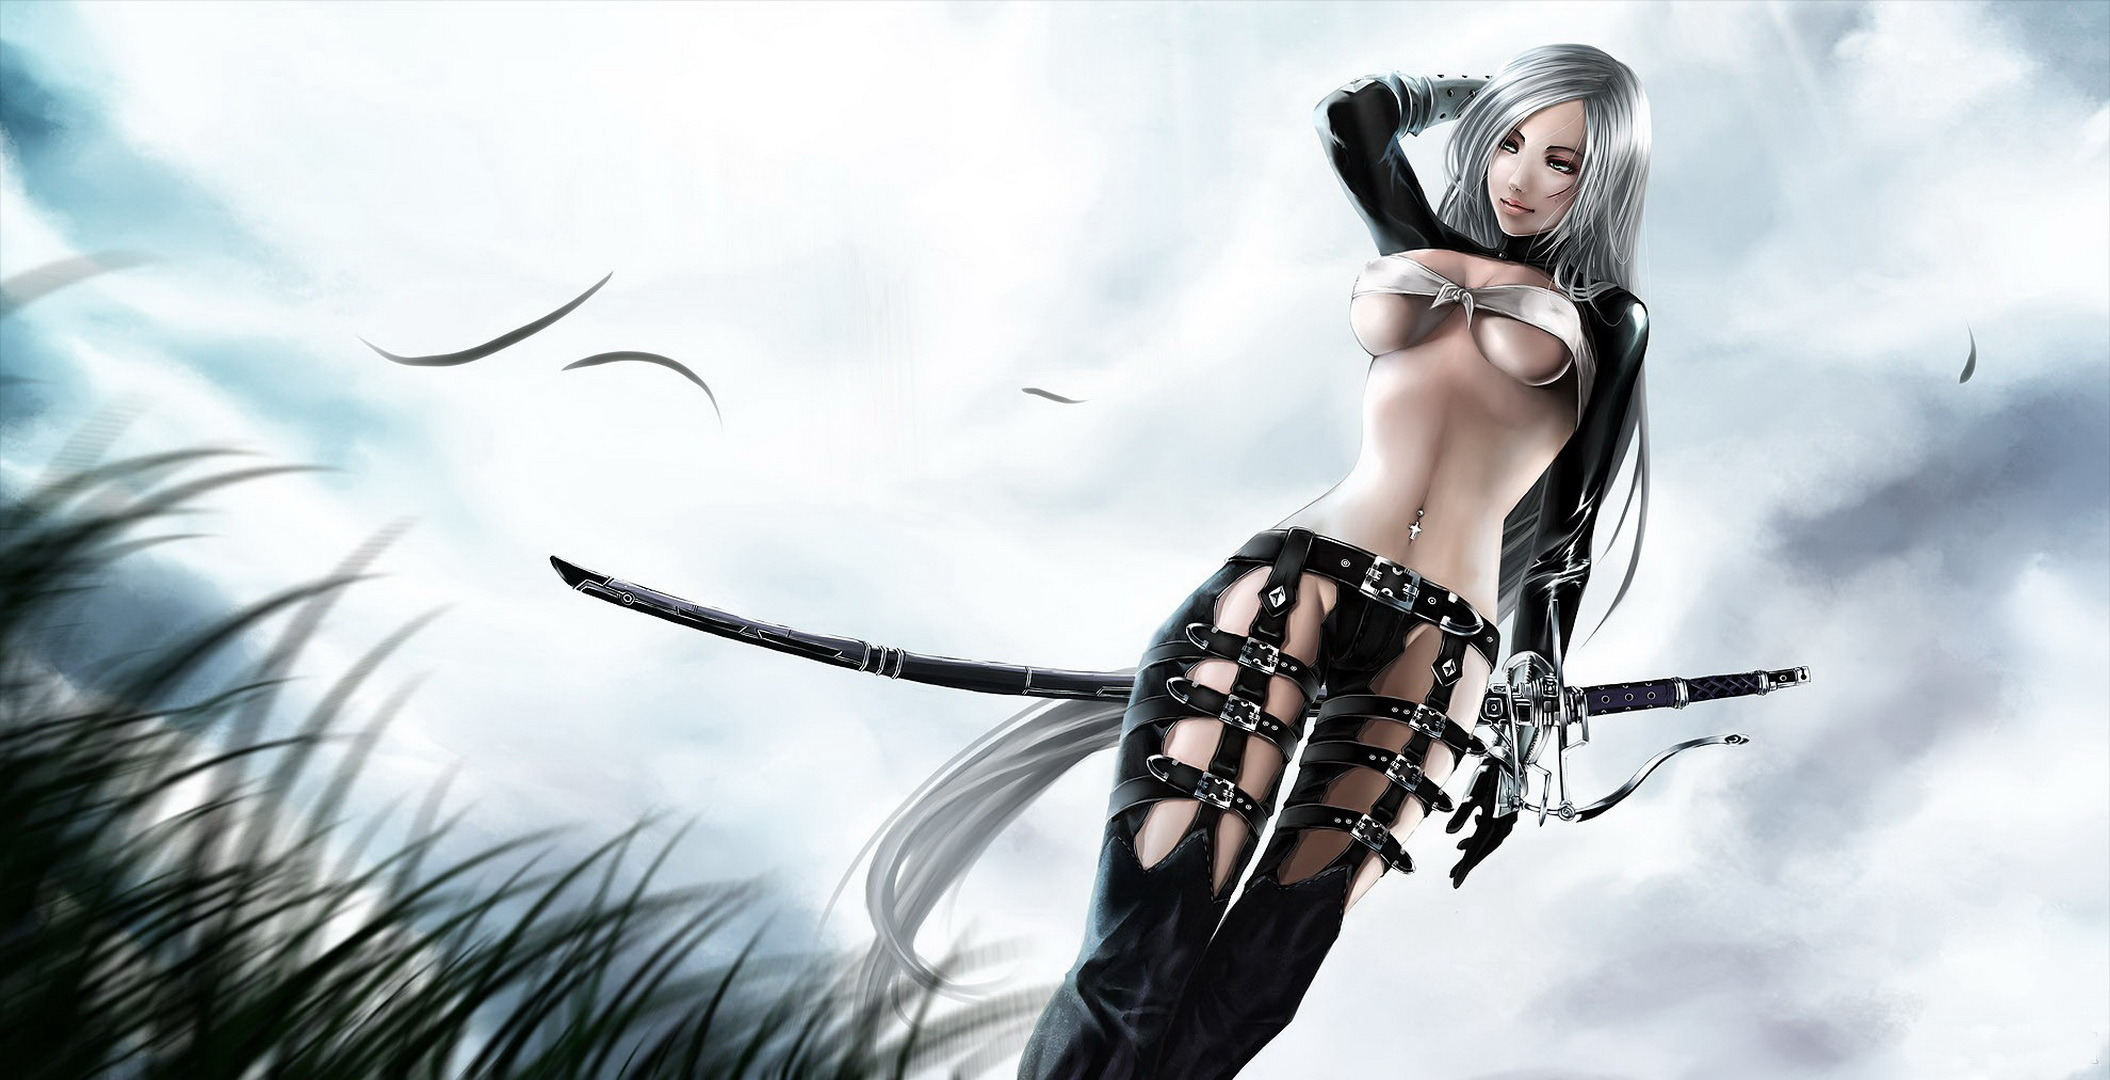 Konachan com 114402 jpeg artifacts sword underboob weapon white hair